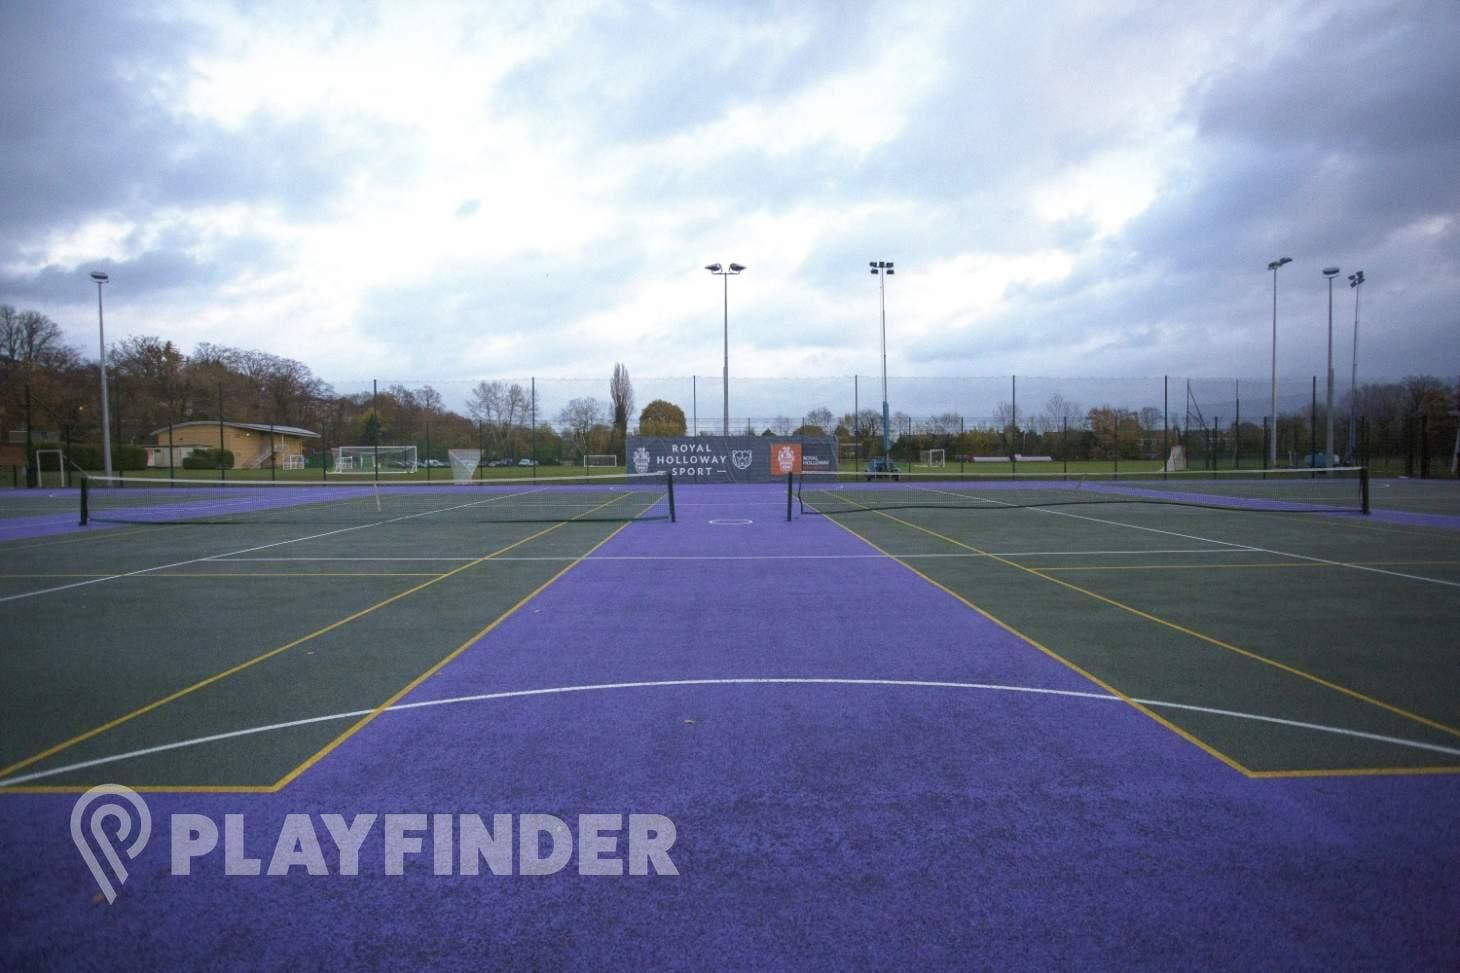 Royal Holloway University Sports Centre Outdoor | Hard (macadam) tennis court